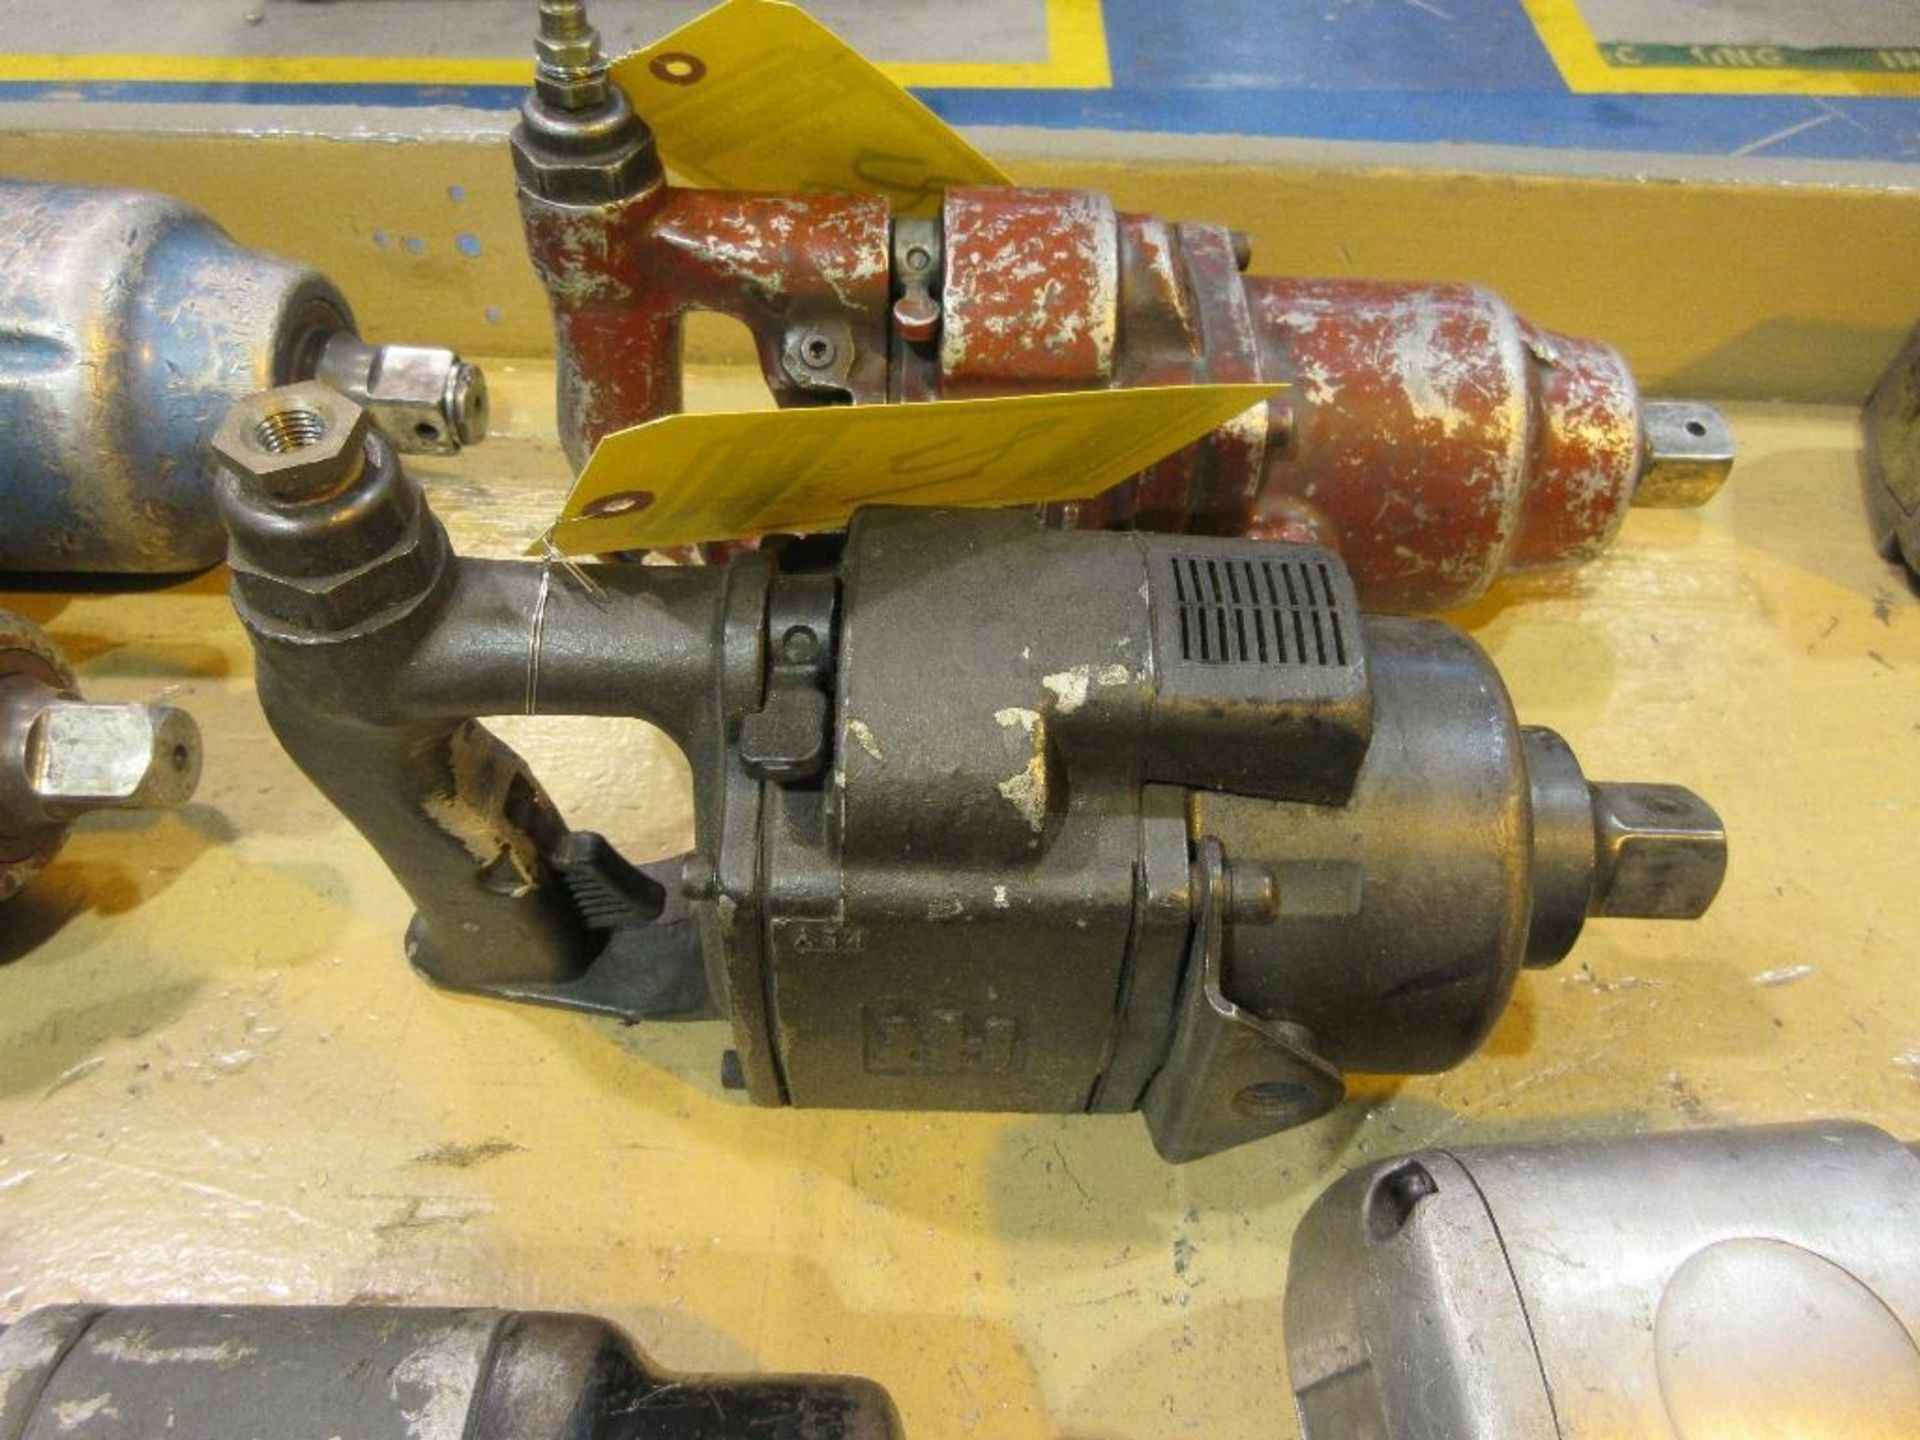 INGERSOLL RAND 1 IN. PNEUMATIC IMPACT WRENCH